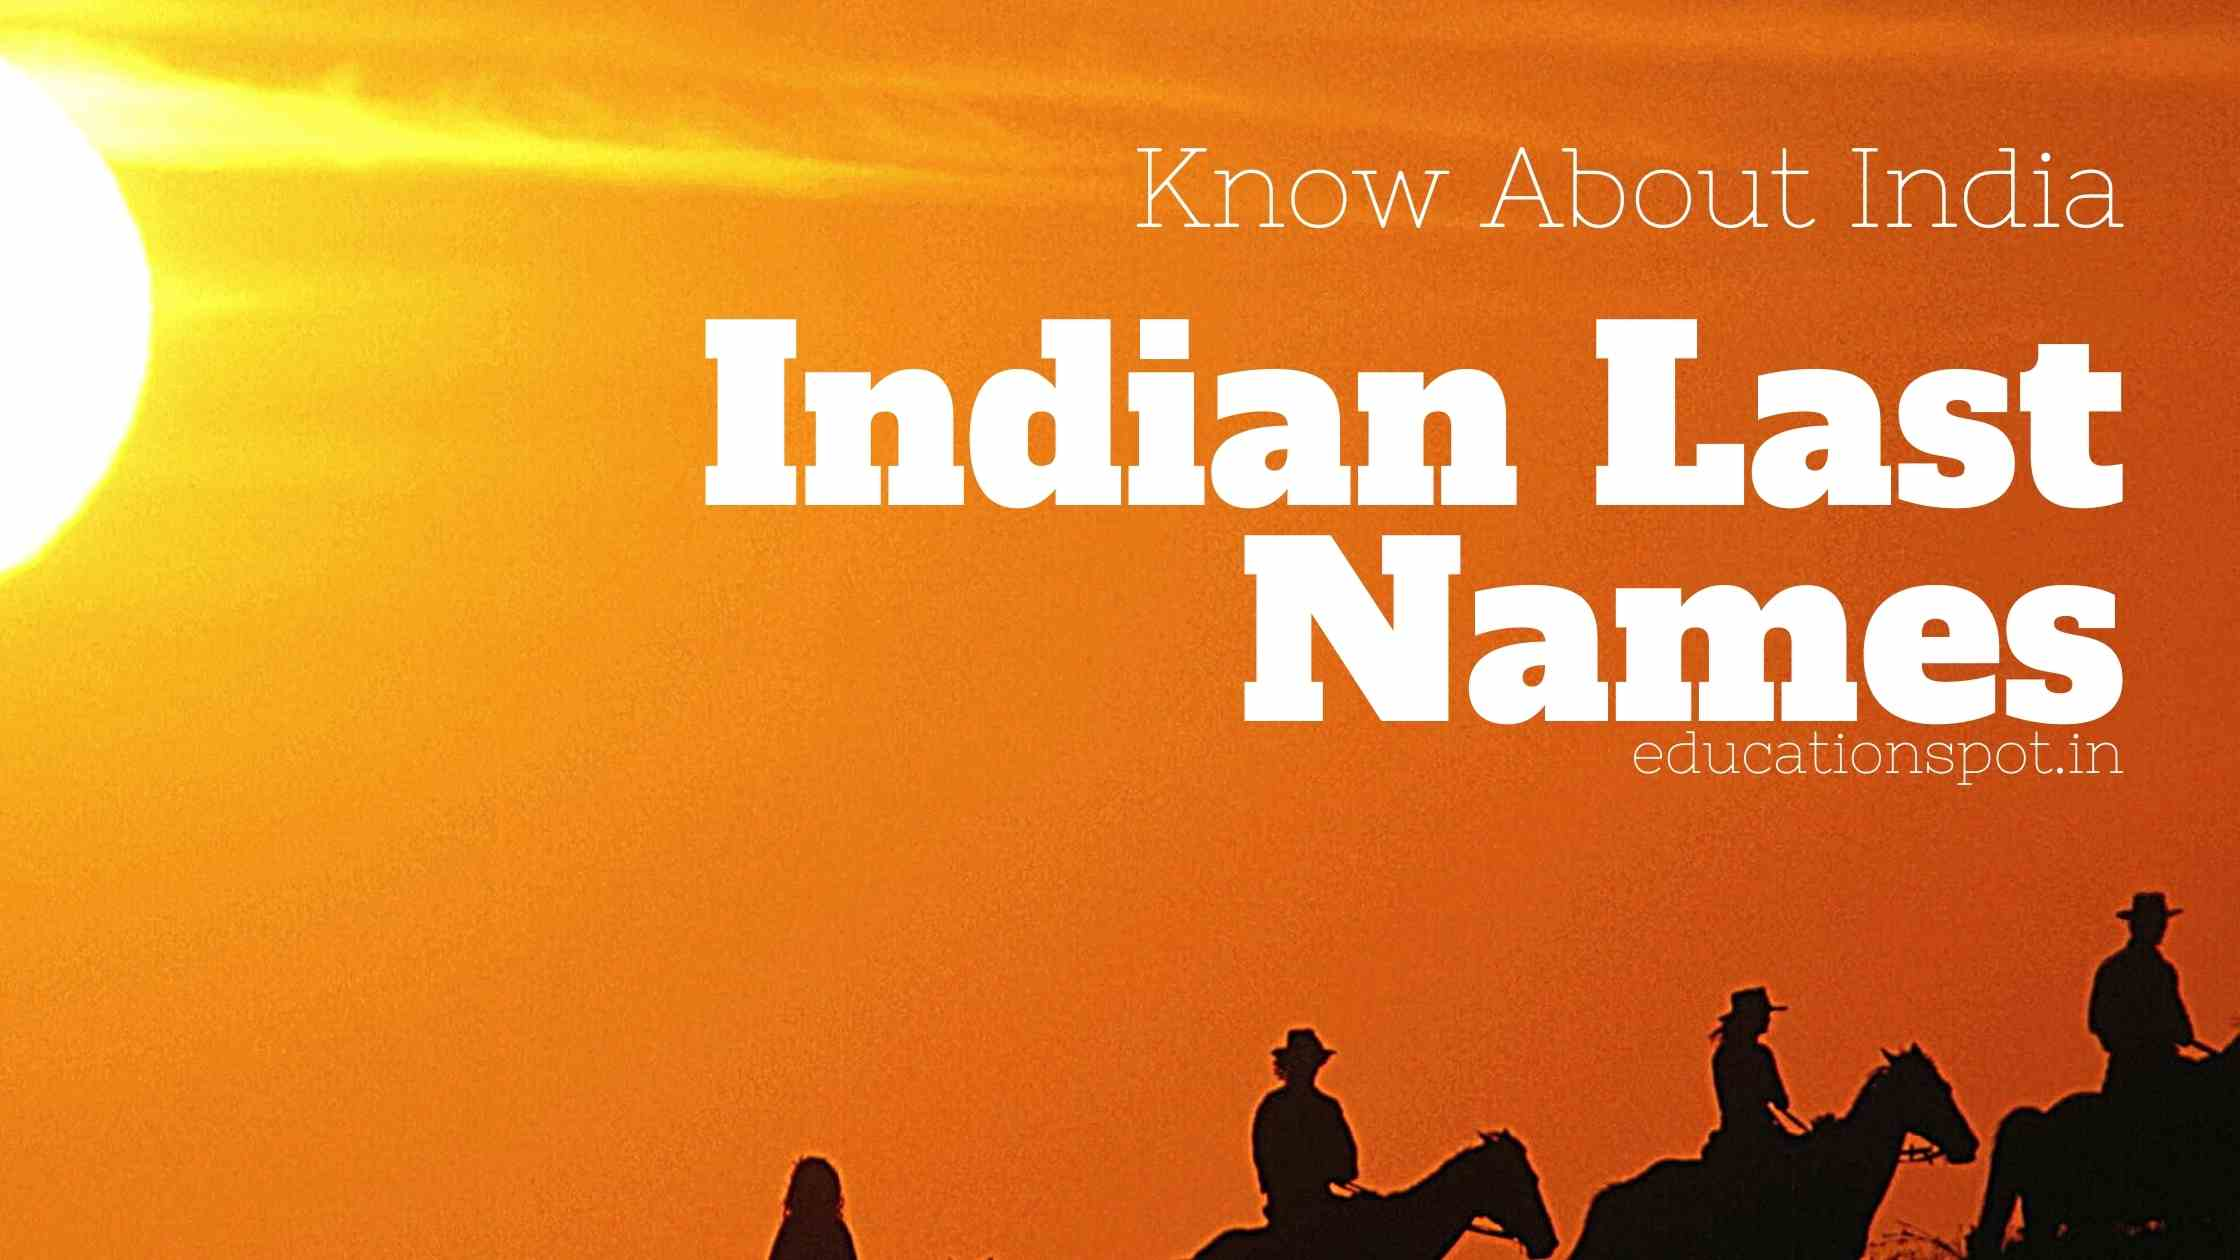 Indian last names or surnames